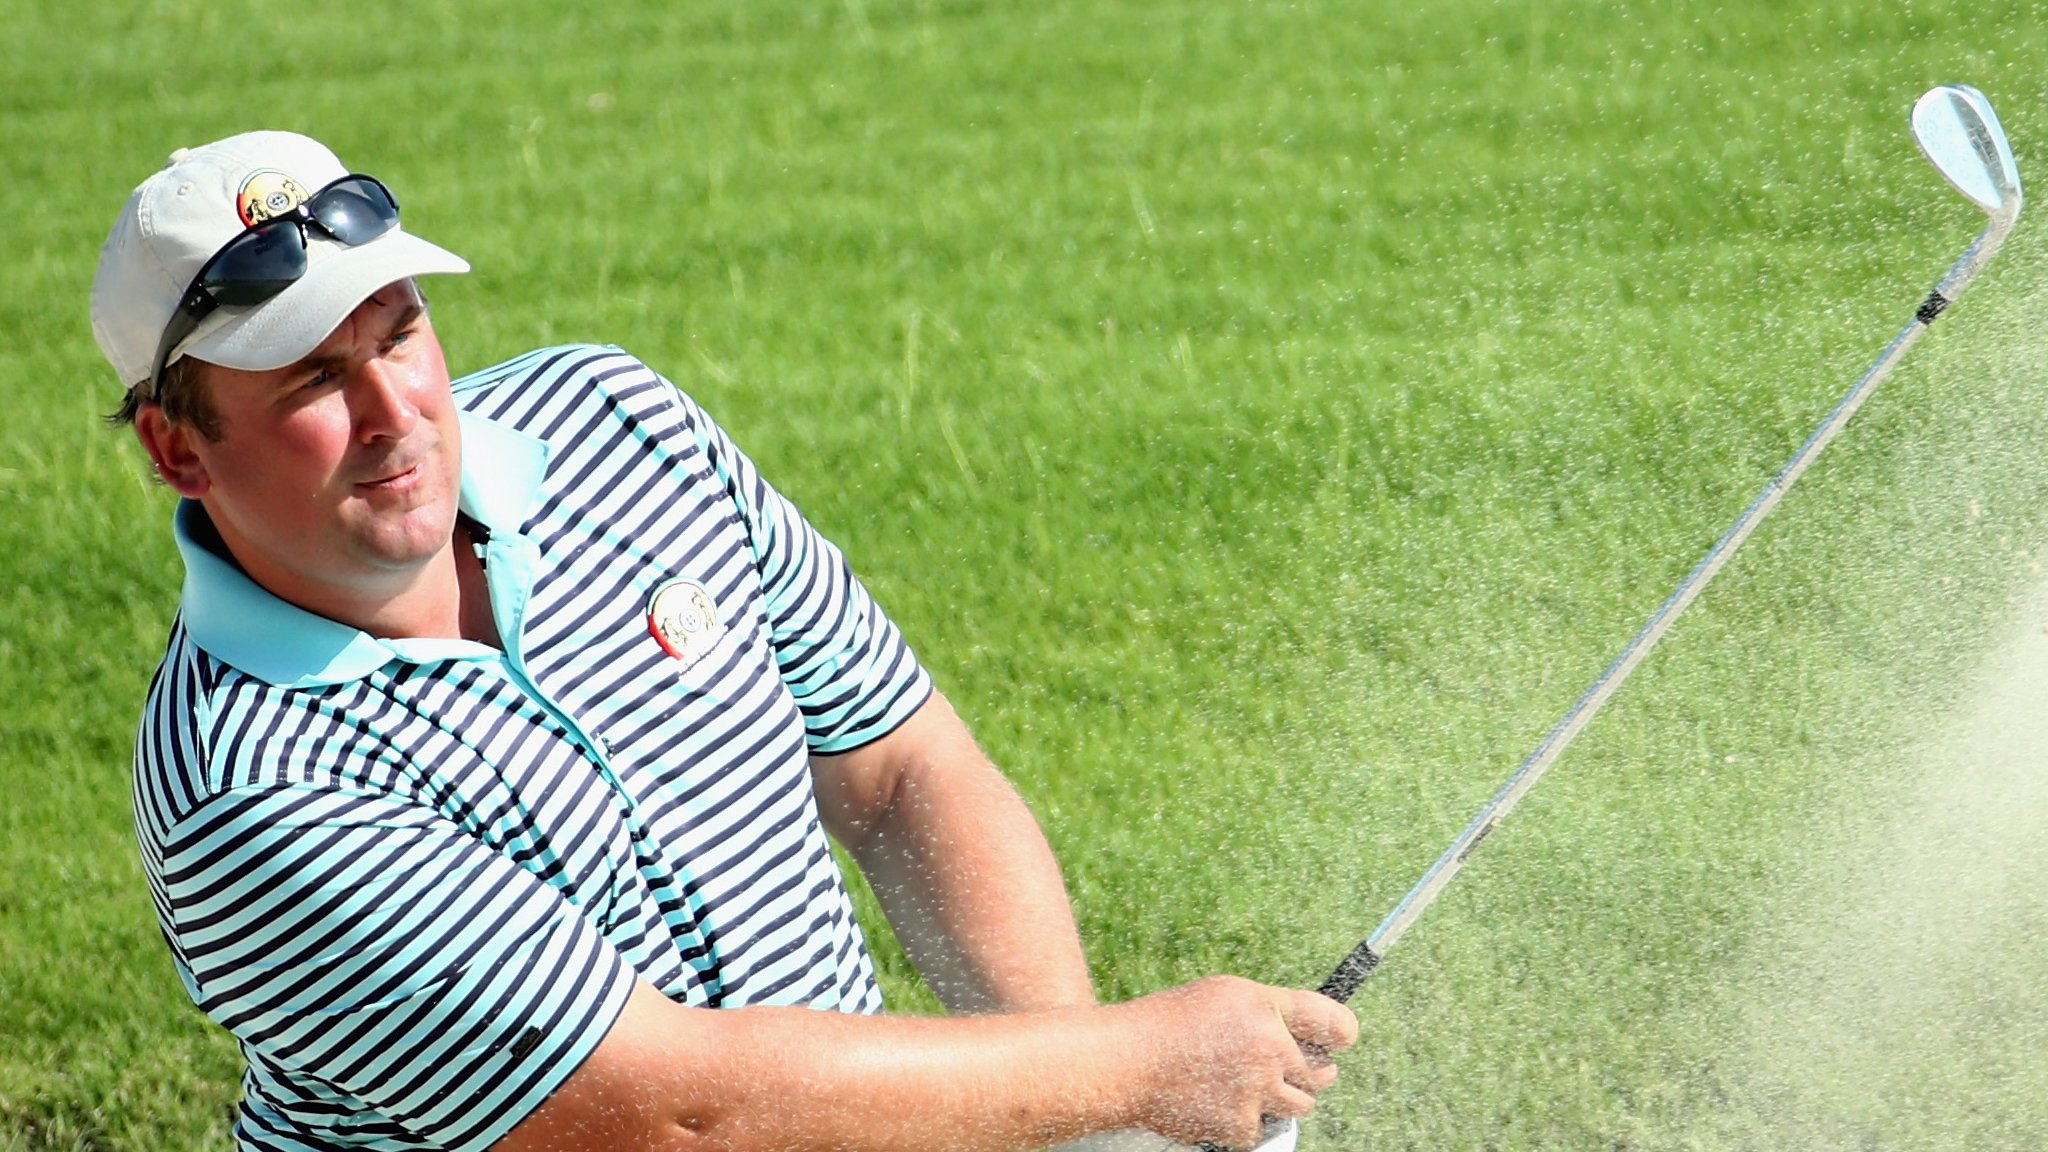 Club pro revels in 'surreal' Abu Dhabi opportunity